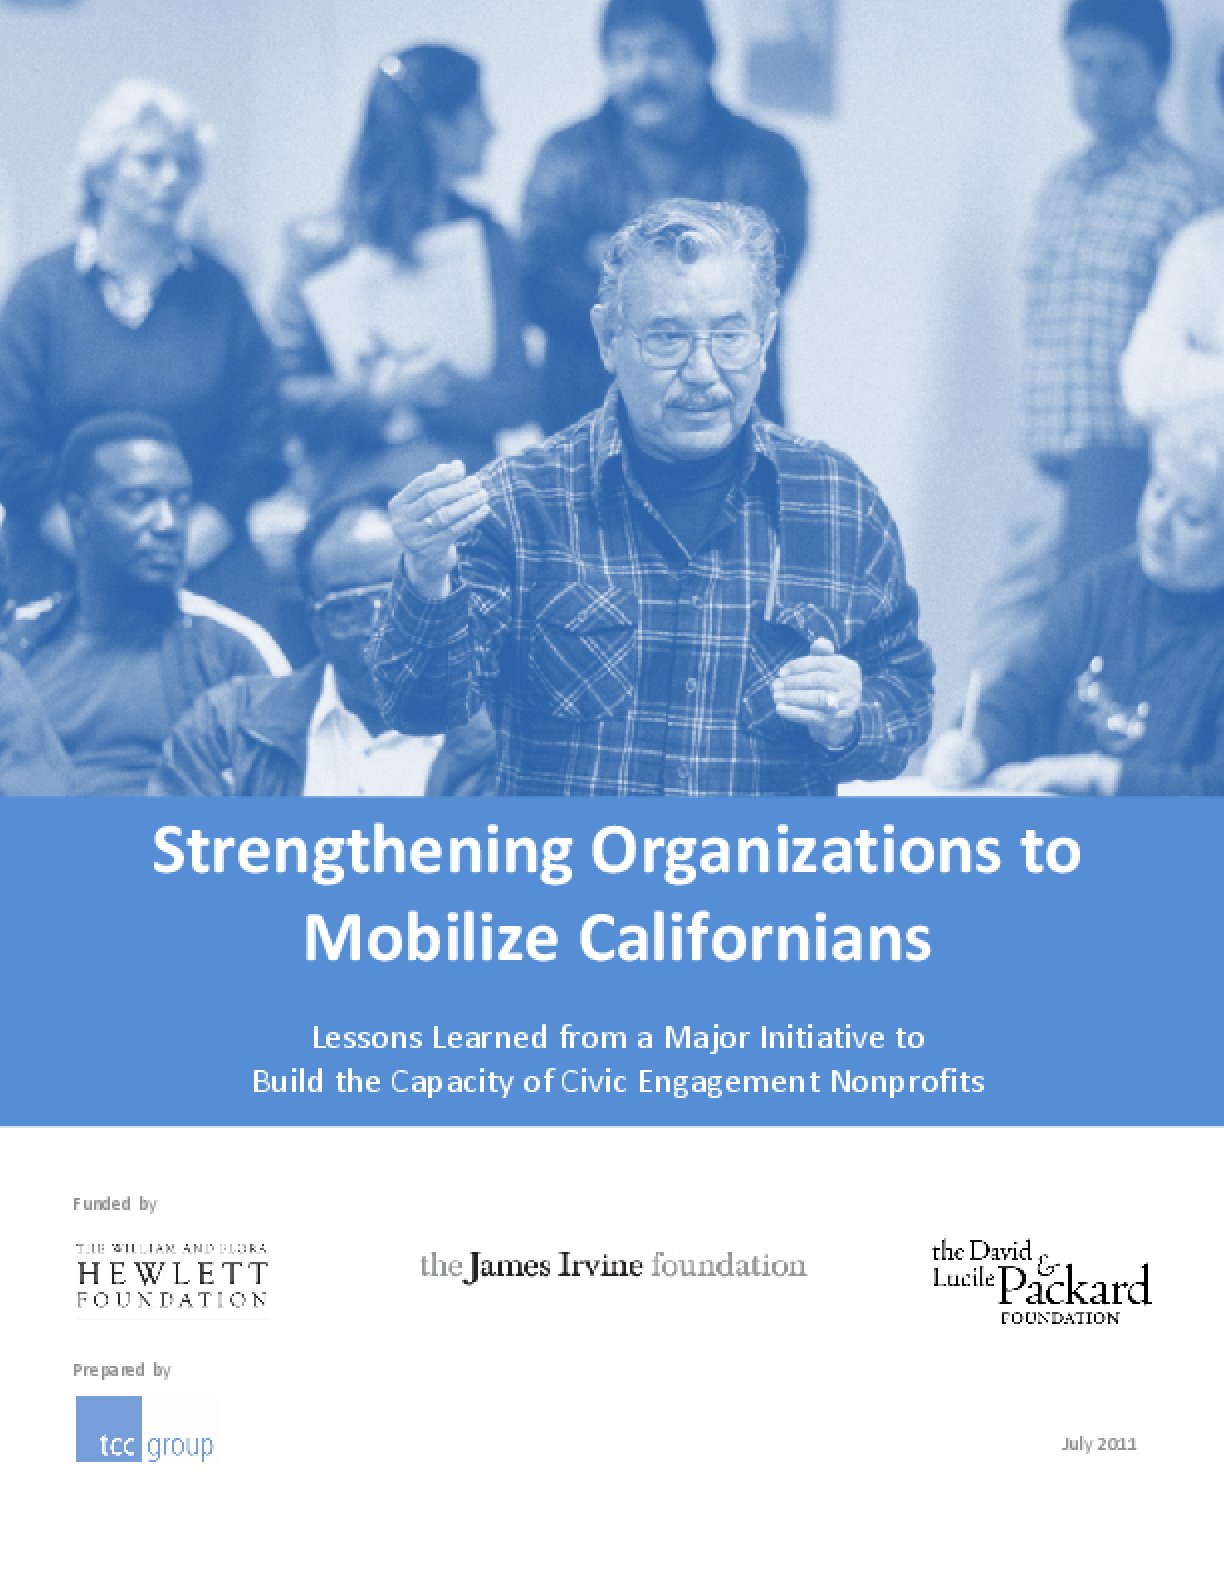 Strengthening Organizations to Mobilize Californians: Lessons Learned from a Major Initiative to Build the Capacity of Civic Engagement Nonprofits